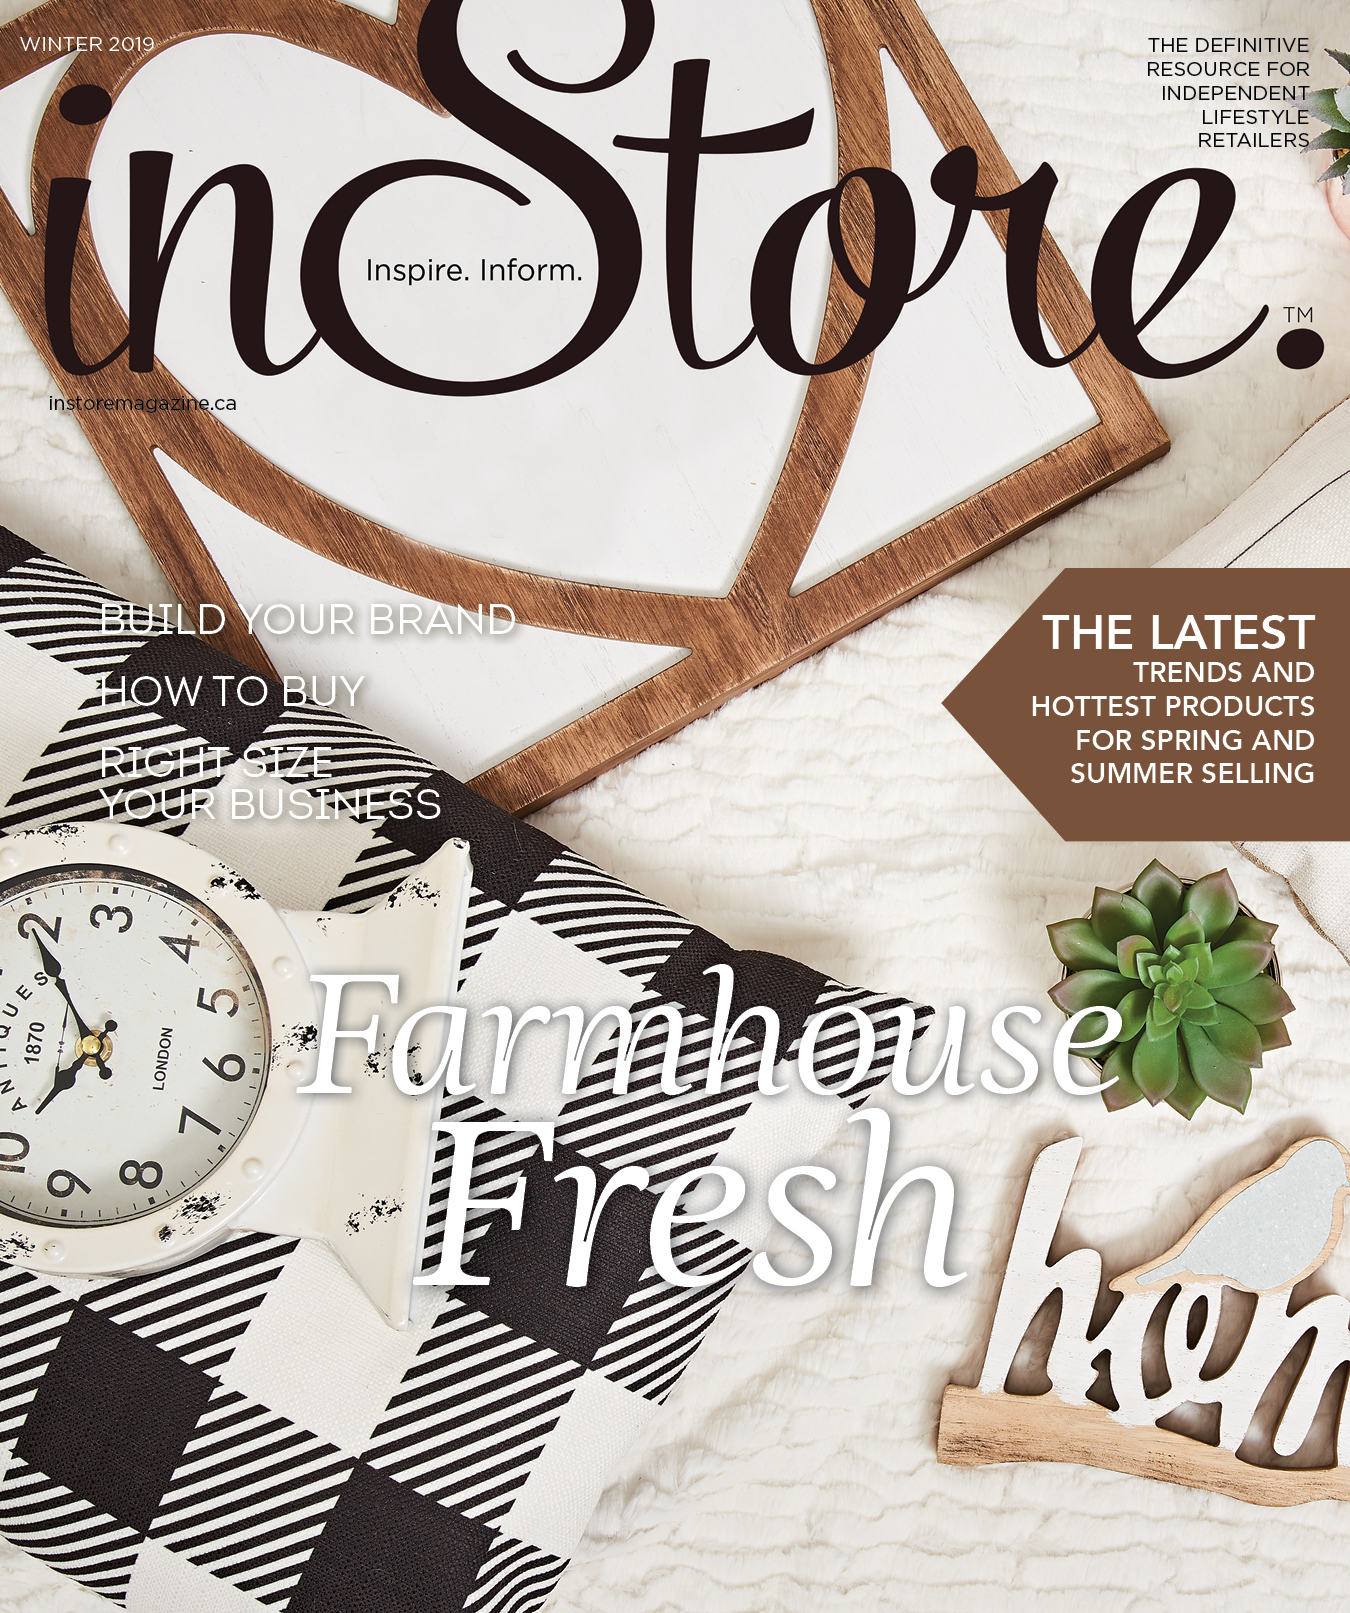 InStore Magazine Winter 2019